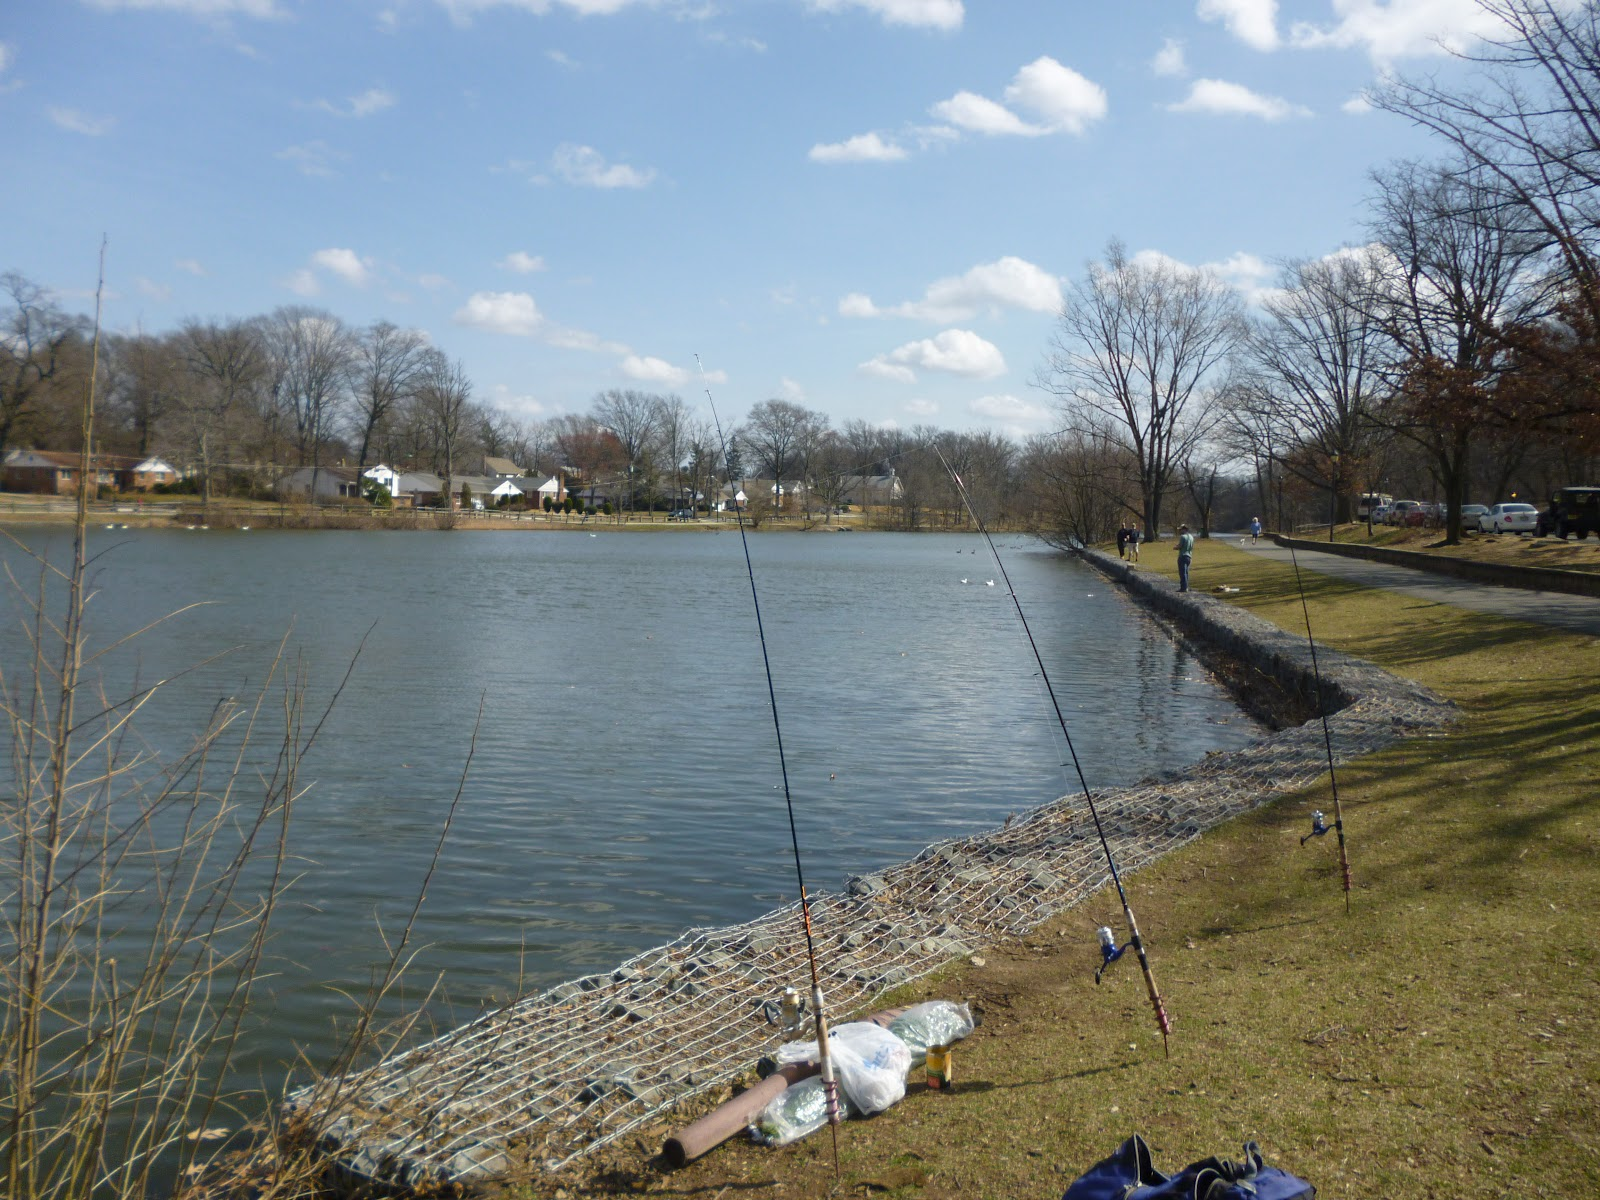 Extreme philly fishing back at the audubon haddon lake in nj for Fishing lakes in nj